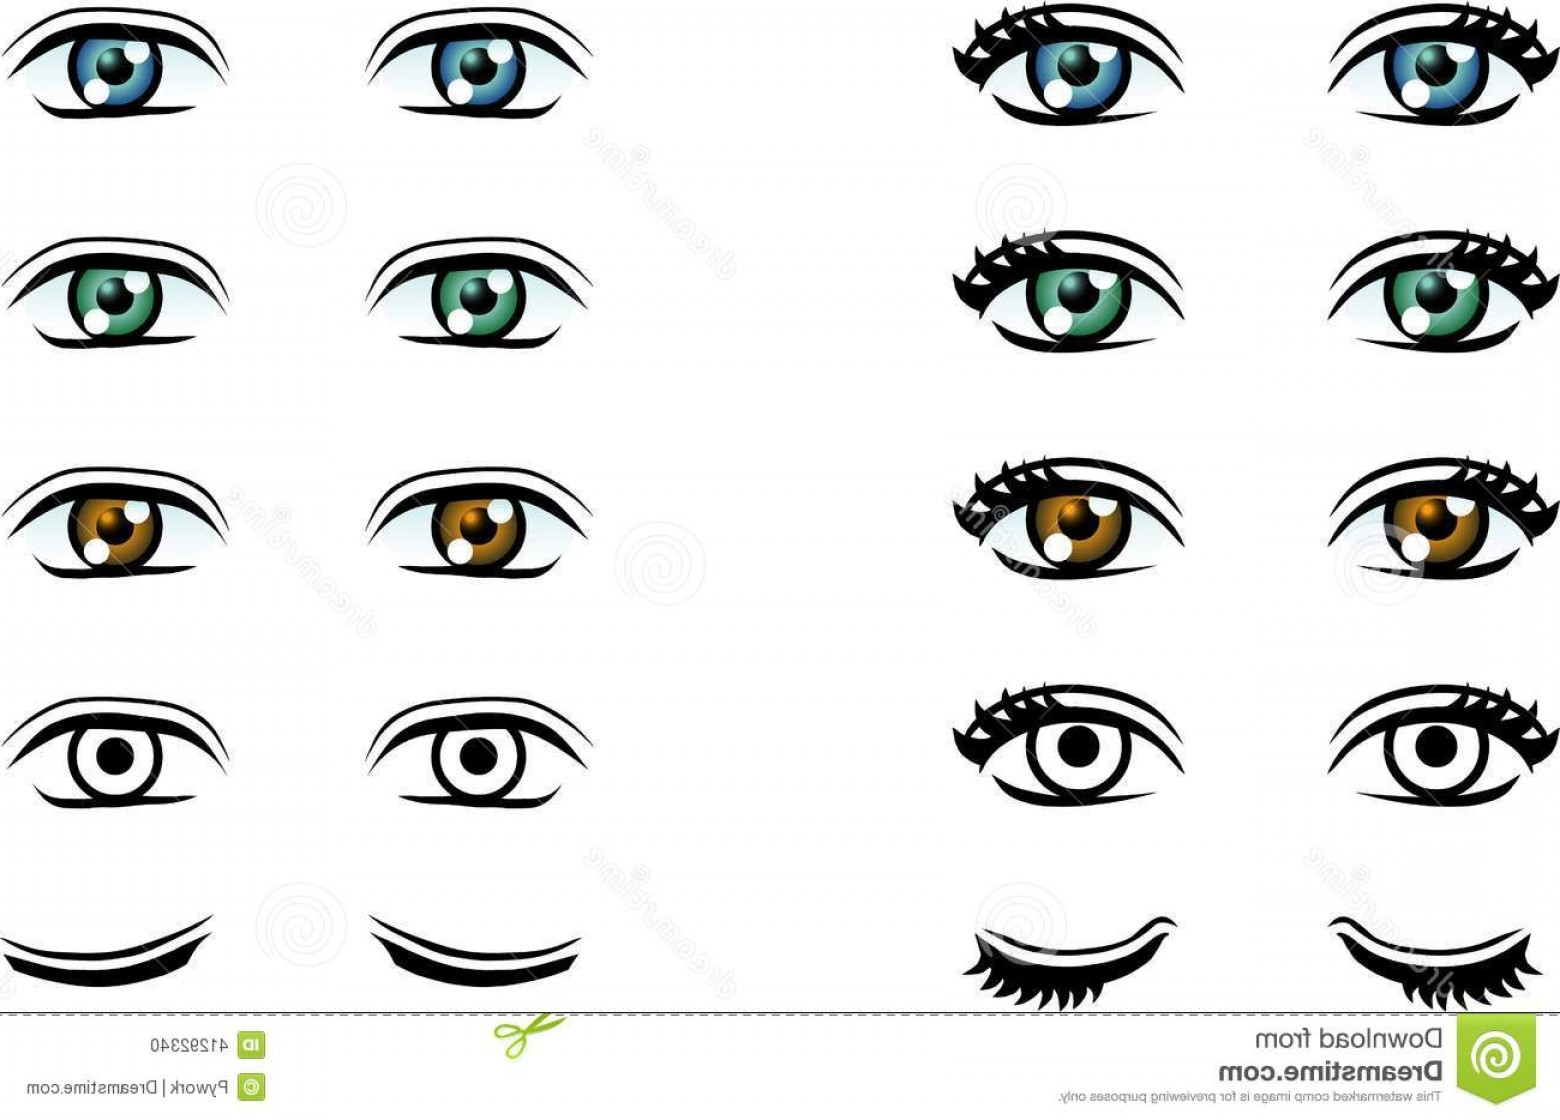 Male Eyes Vector Graphic: Stock Illustration Vector Man Woman Eyes Different Color Illustration Image